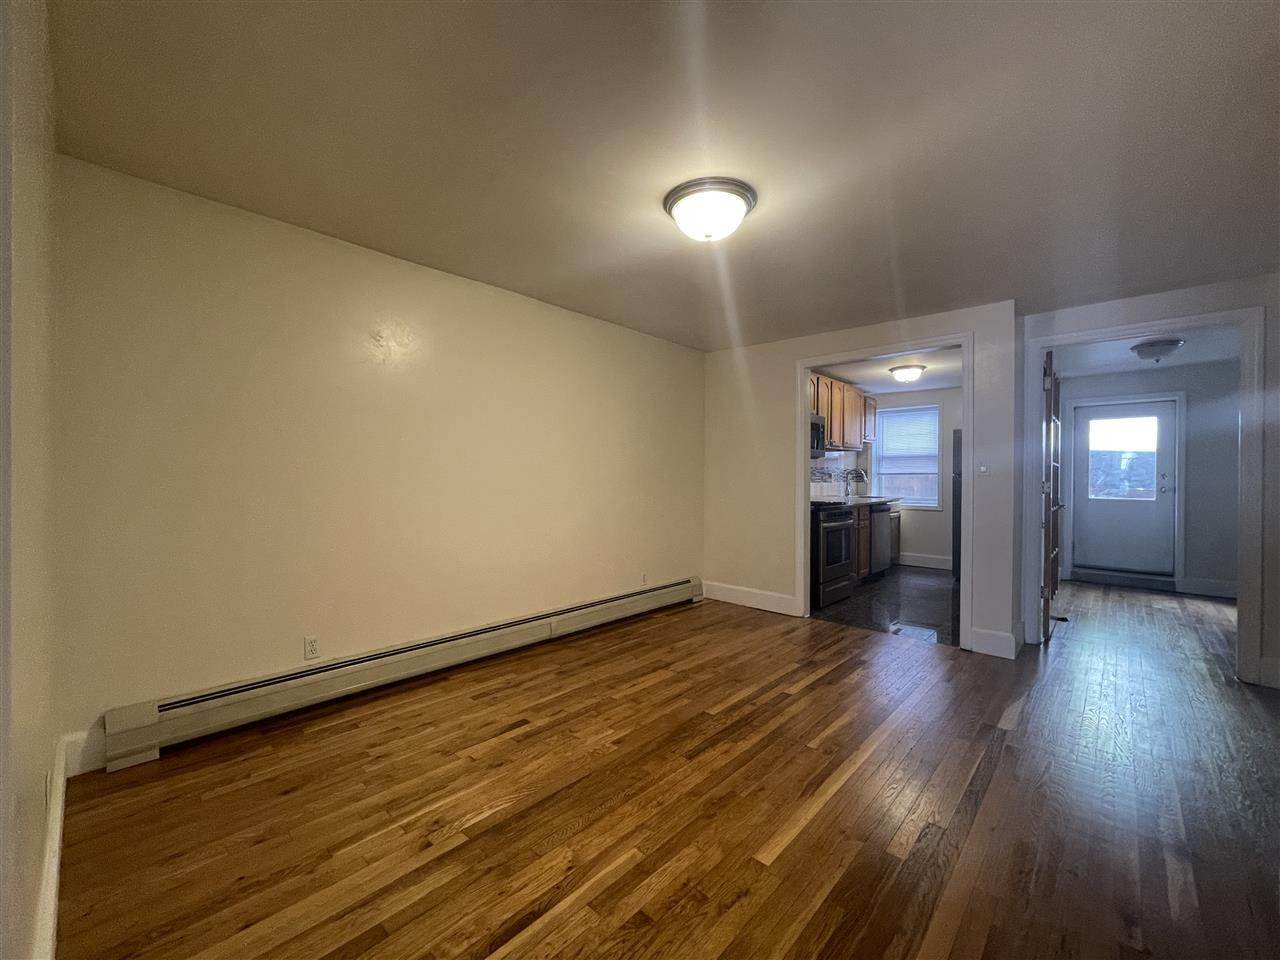 3. Single Family Home for Rent at 204 CHRISTOPHER COLUMBUS DRIVE #1 Jersey City, New Jersey, 07302 United States